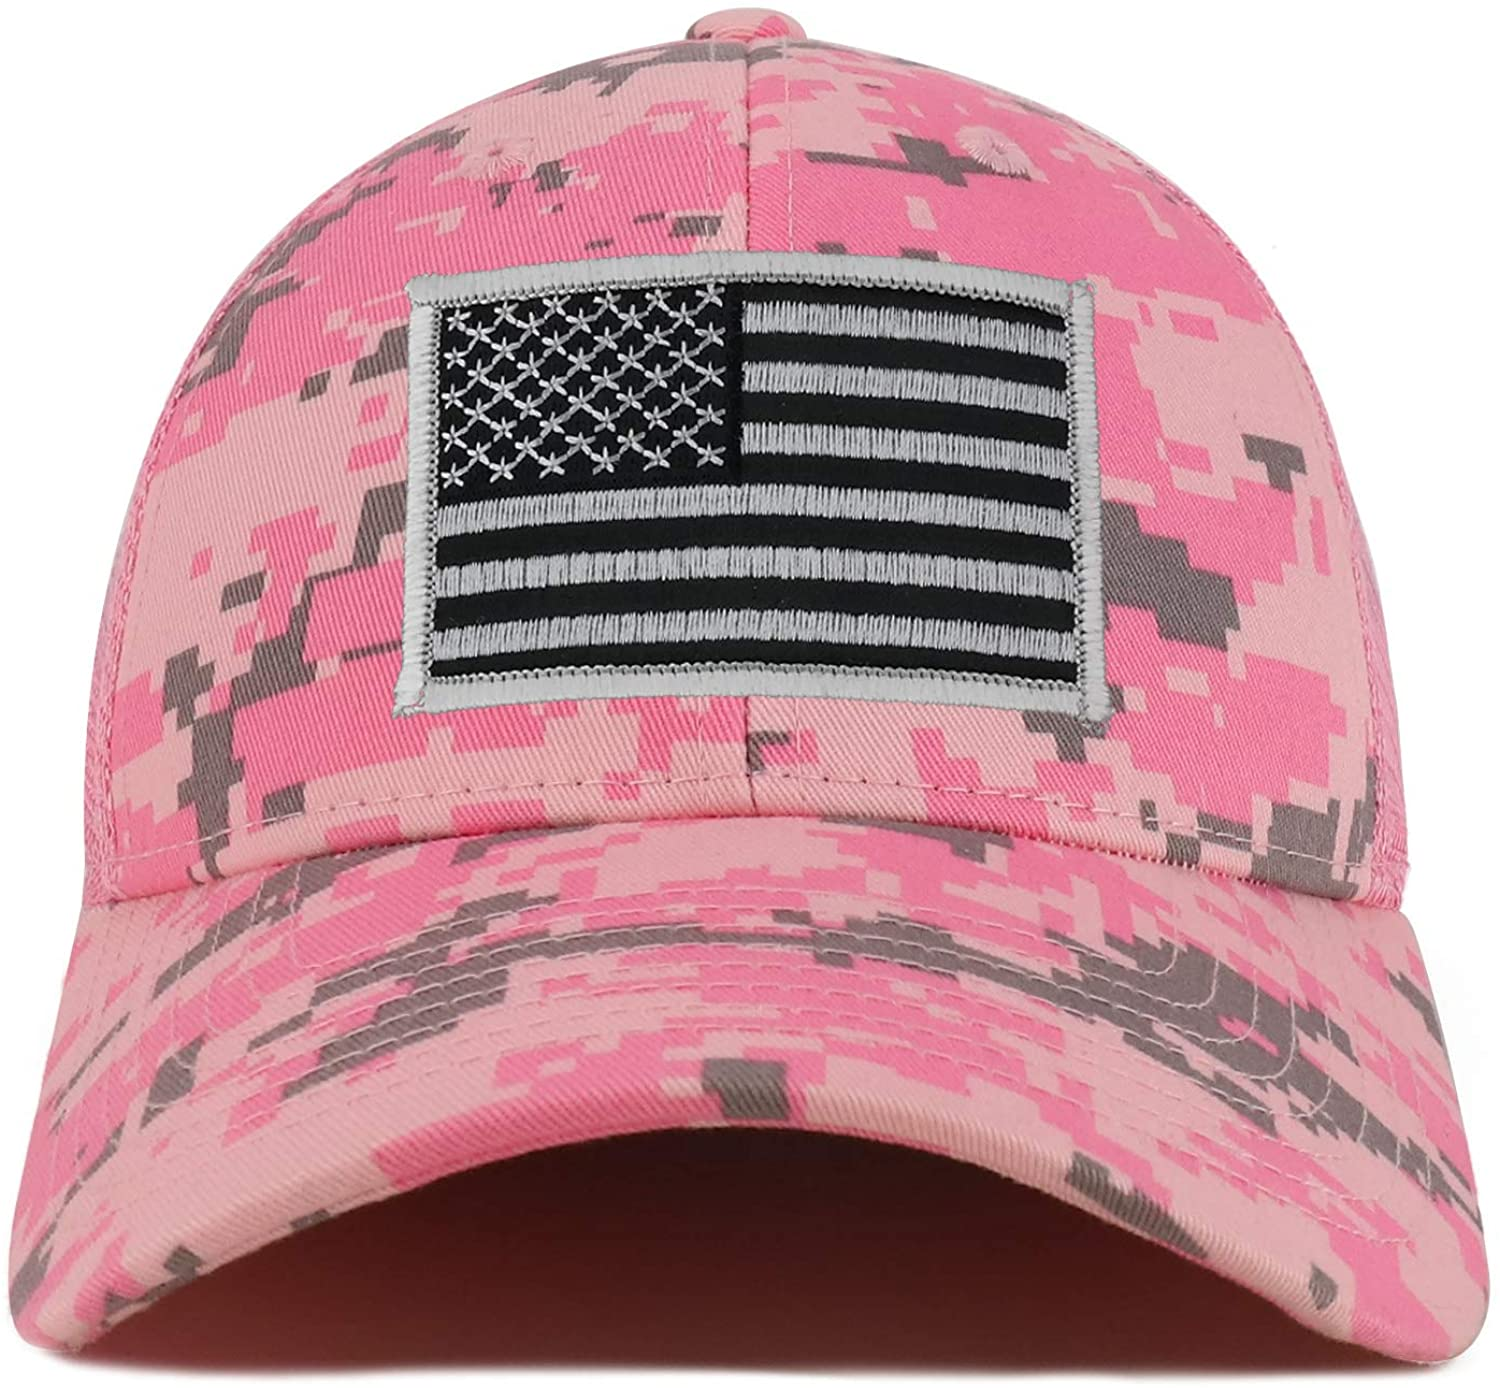 Armycrew Black Grey American Flag Patch Camouflage Structured Mesh Trucker Cap - PKD